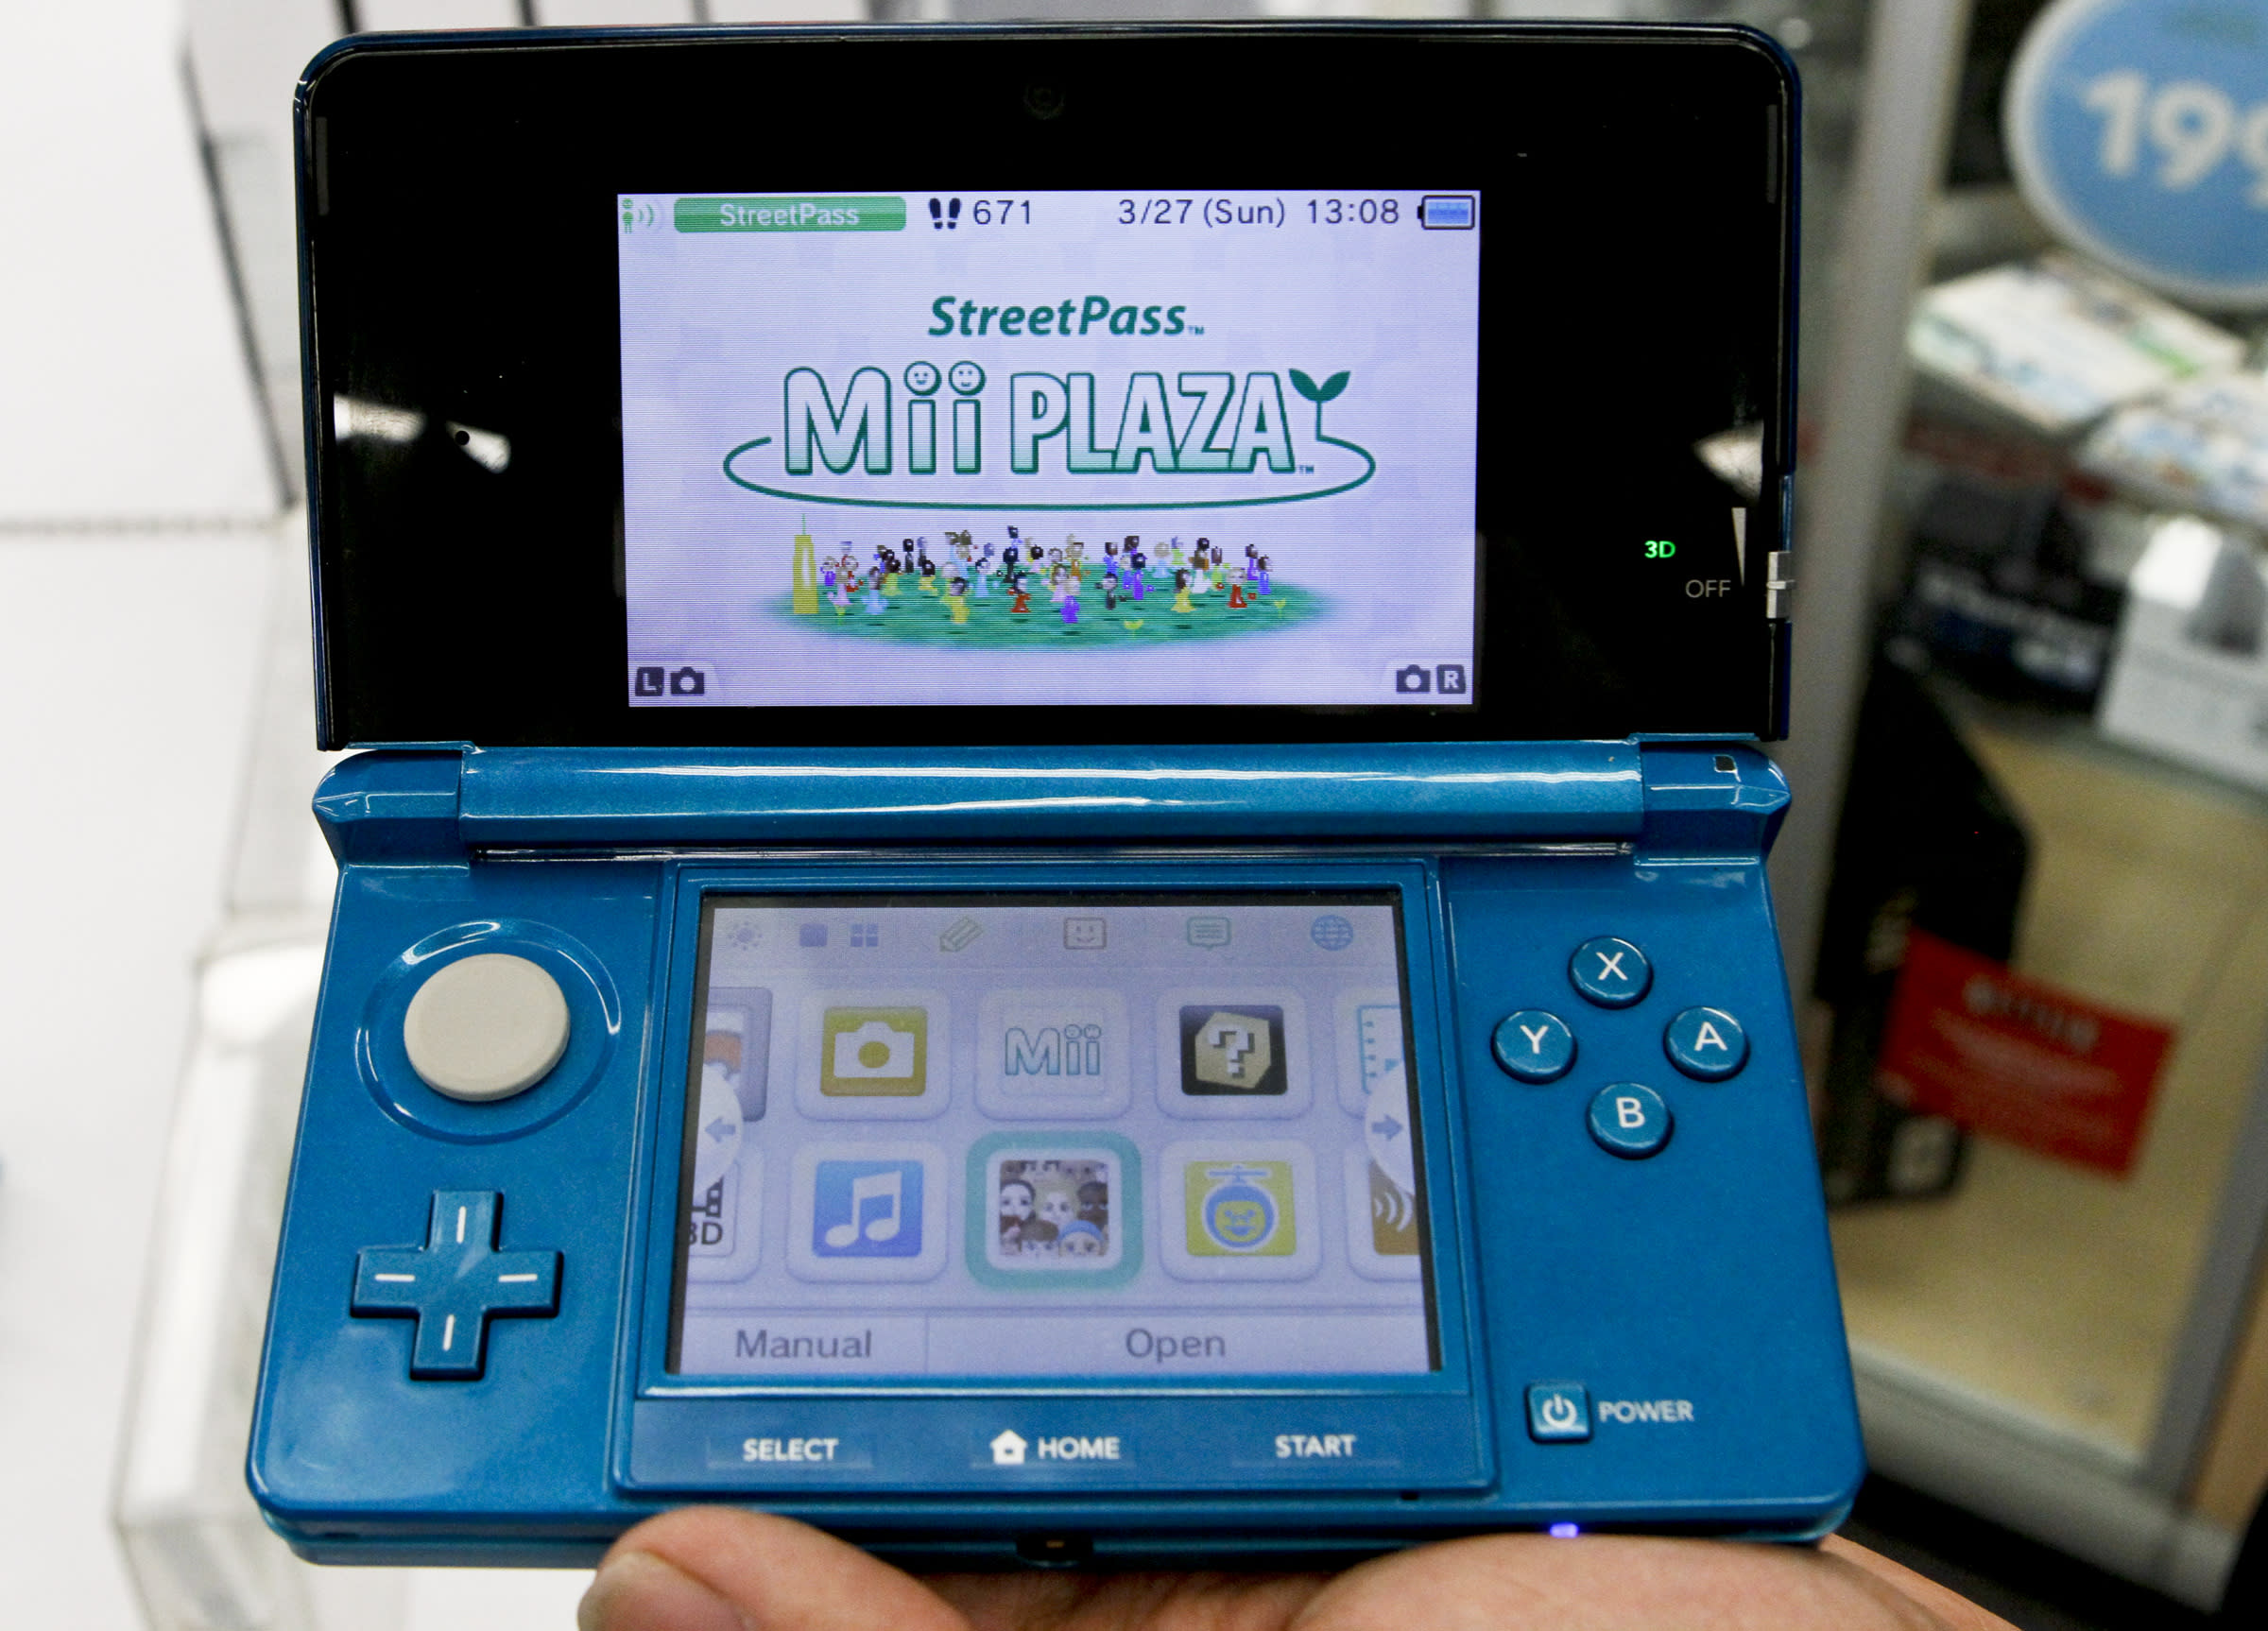 A closeup of the new 3D capable handheld Nintendo 3DS at Toys R Us in Culver City on March 27, 2011